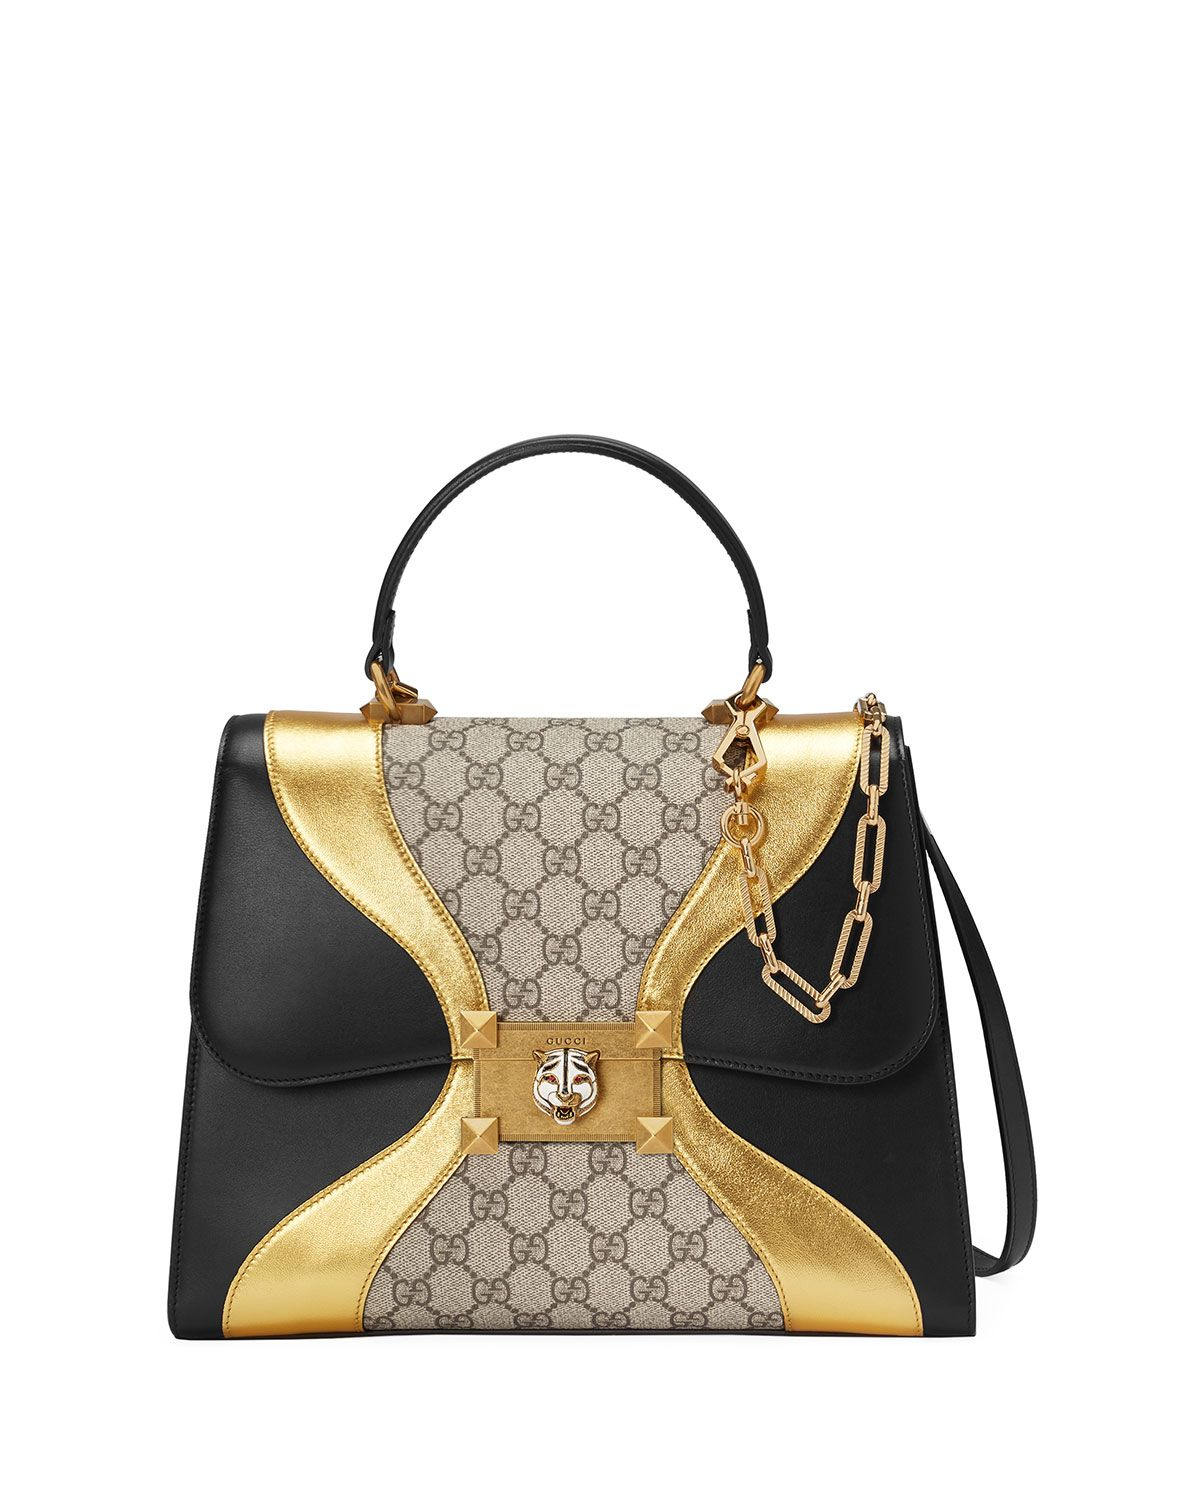 331653ed712c Gucci Fall 2017 Collection at Bergdorf Goodman Gucci Handbags